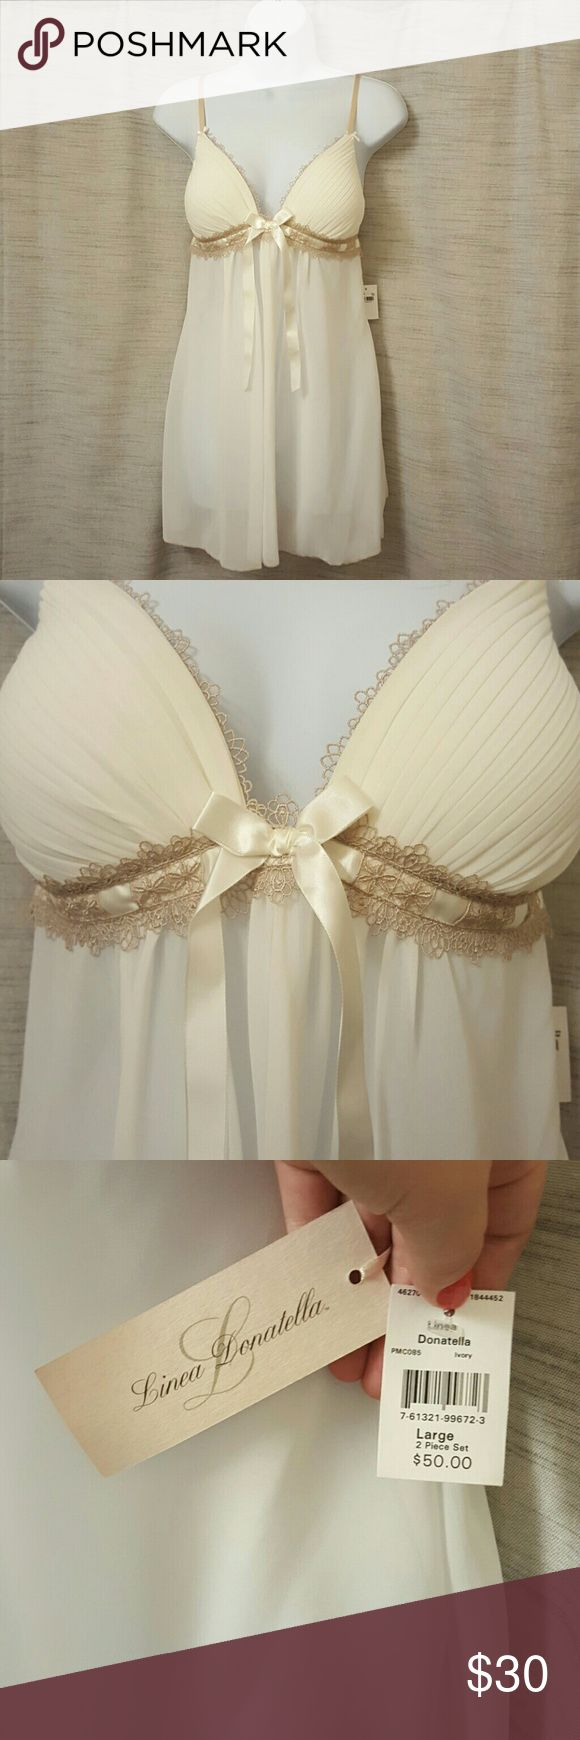 Linea Donatella lingere set Beautiful women's lingerie size large. Brand new with tags, beautiful cream color with matching panty and gorgeous satin accents. Perfect for a bridal shower or lingerie gift! Linea Donatella Intimates & Sleepwear Chemises & Slips